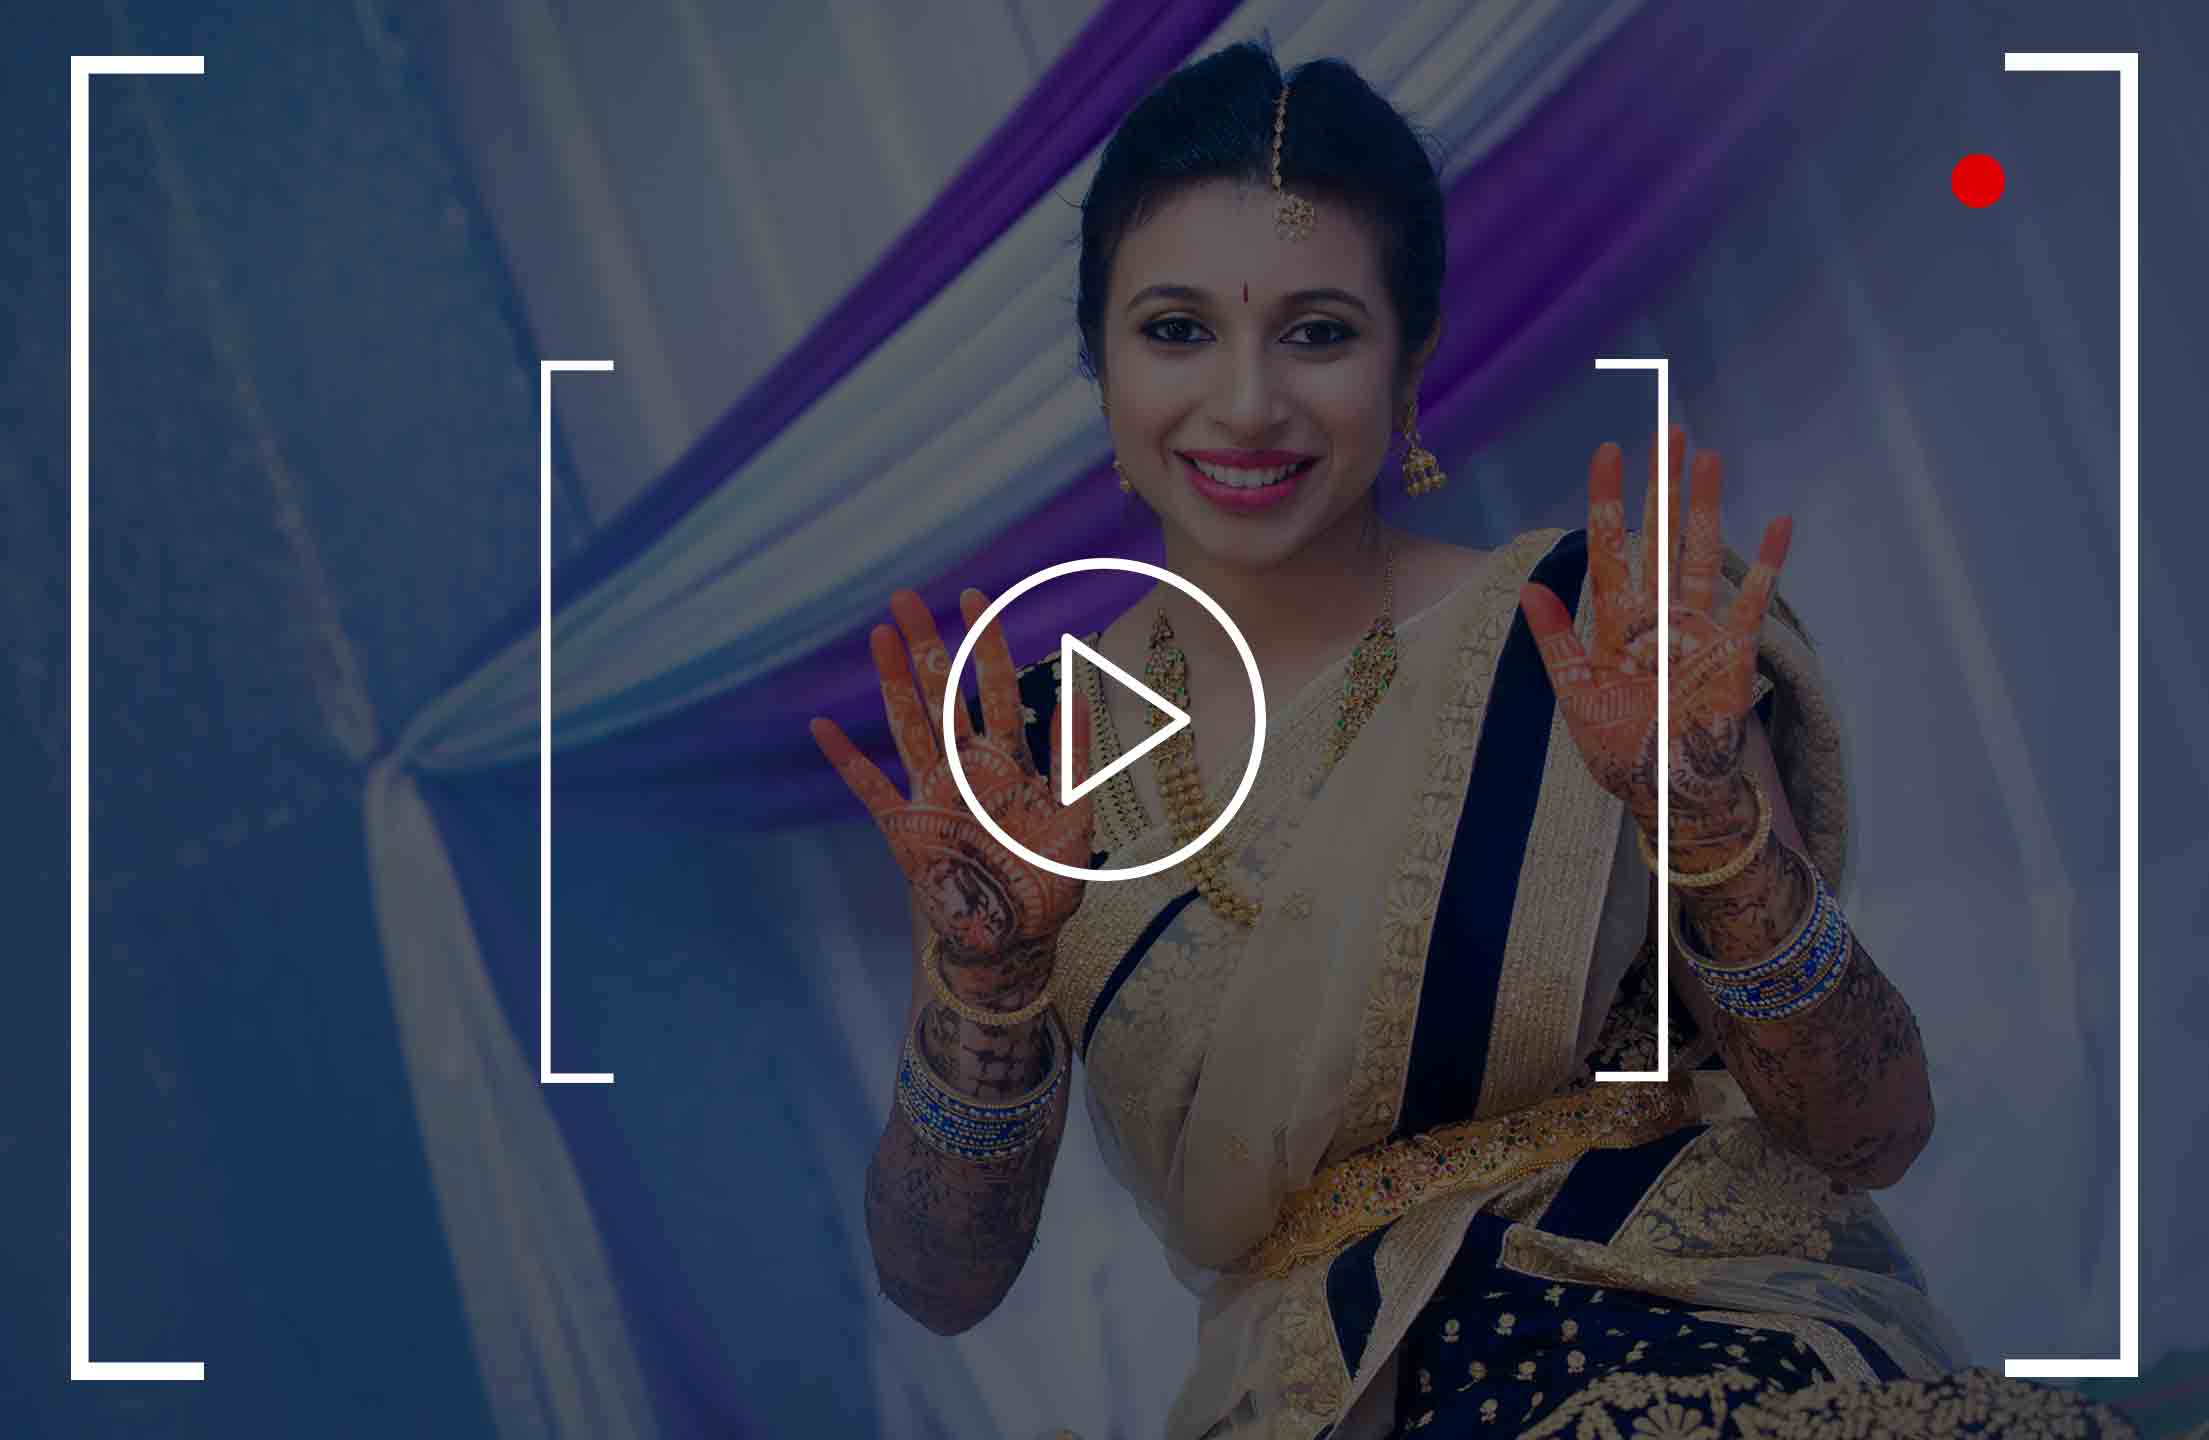 live-vshoot-coverage-photography-wedding-candid